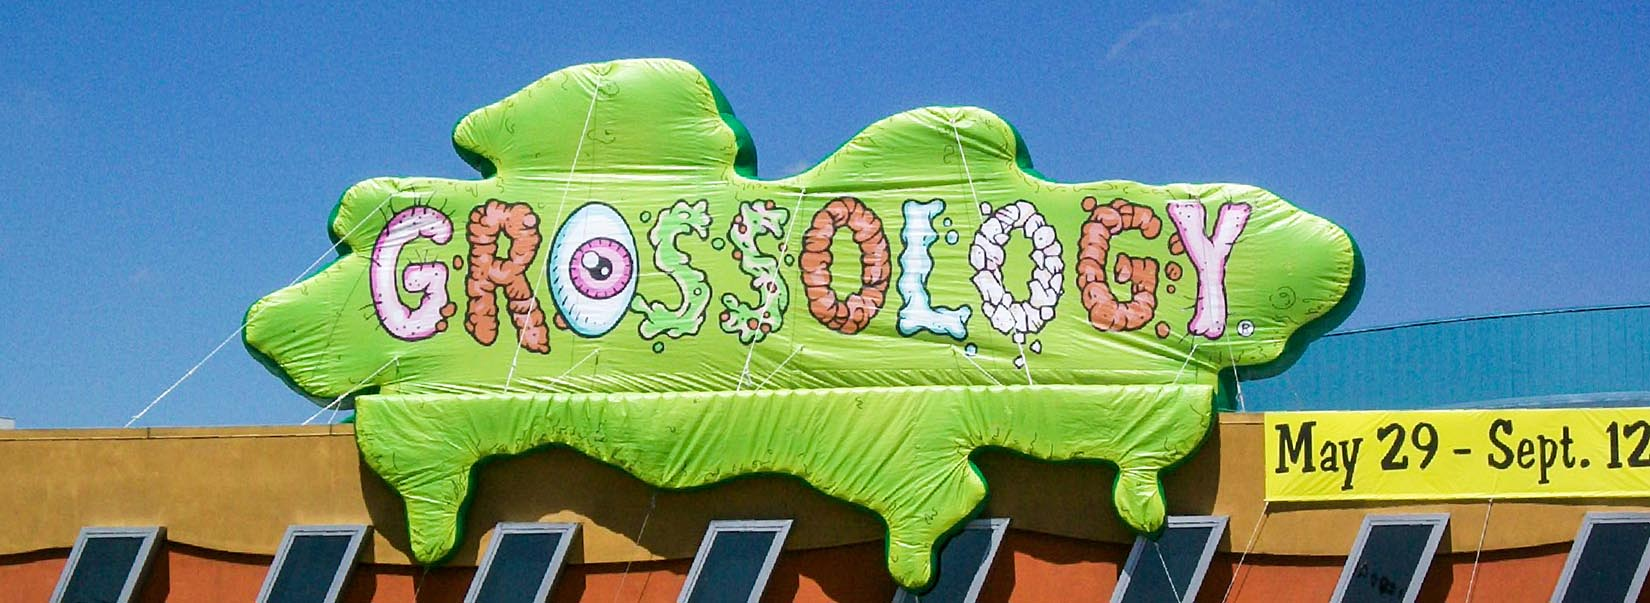 Grossology Science Center Custom Inflatable Sign with custom graphics and print